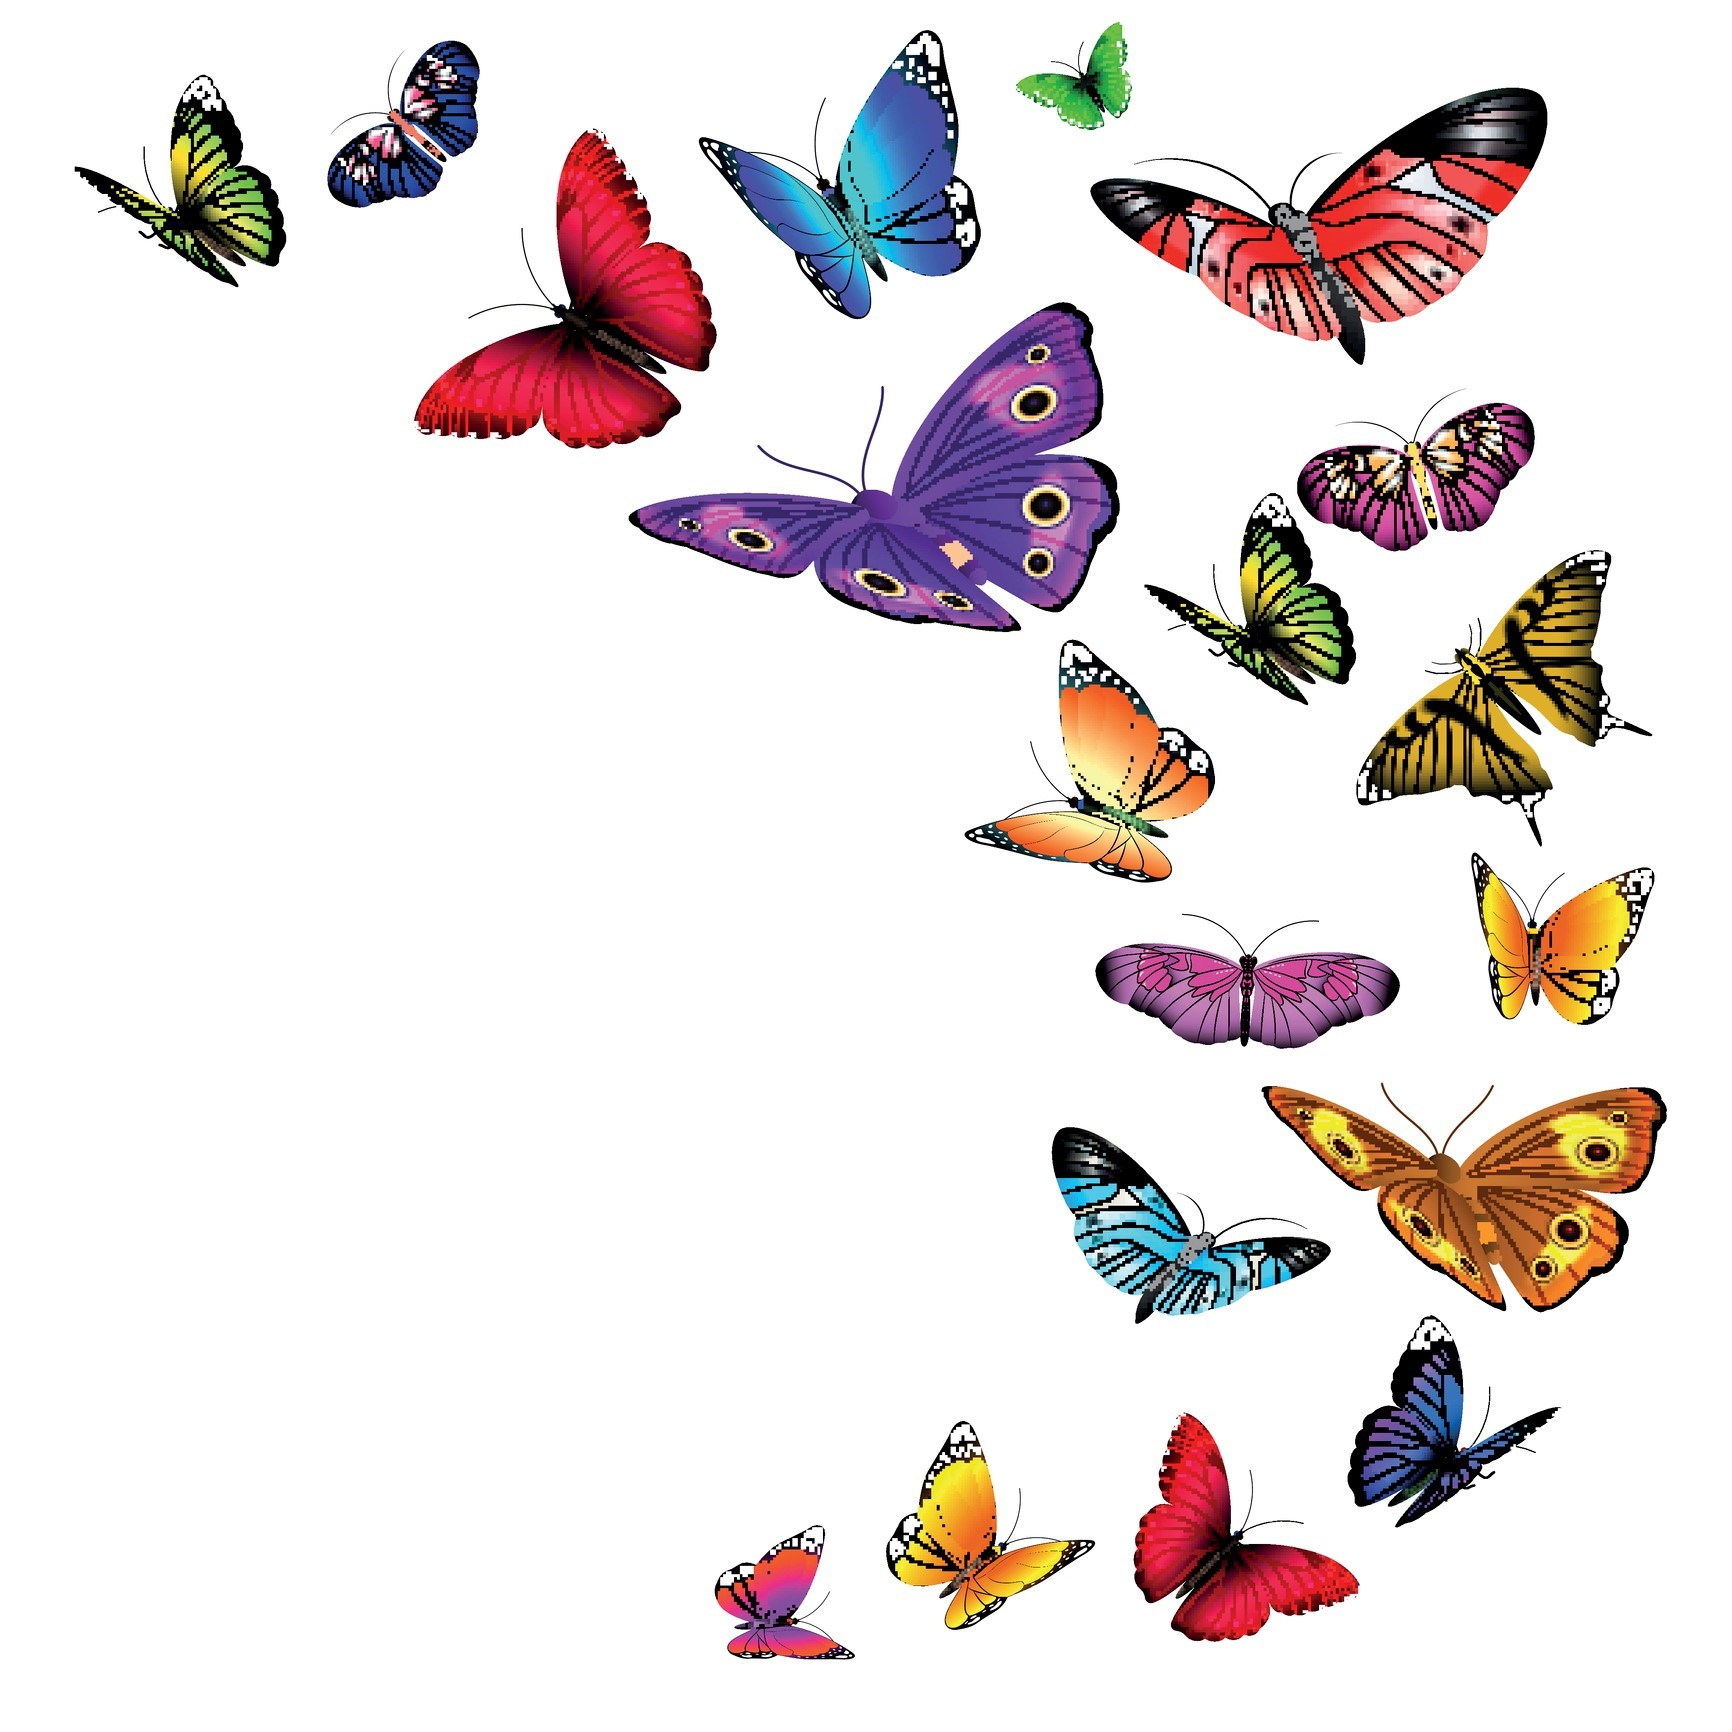 The Butterfly Effect in action